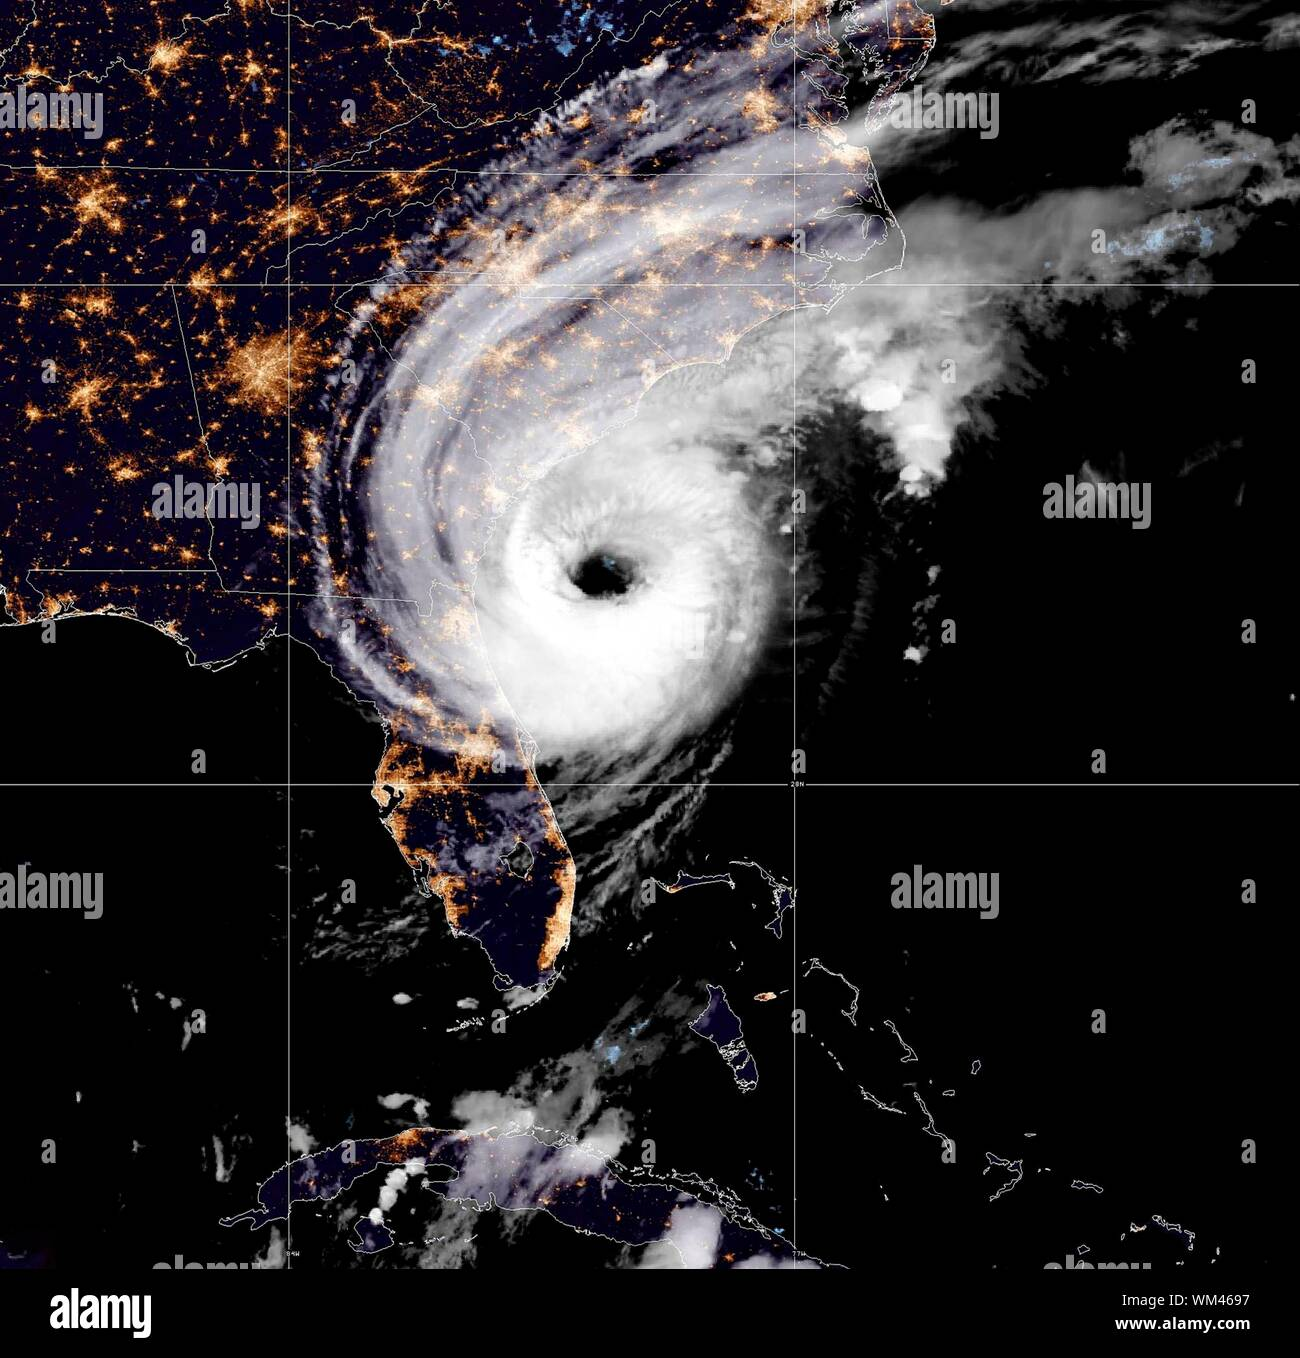 The NOAA GOES-16 satellite showing the night view of catastrophic Hurricane Dorian as it moves off the coast of Savannah, Georgia as a Category 2 storm September 4, 2019 in the Atlantic Ocean. Dorian struck the Bahamas as a Category 5 storm with winds of 185 mph and has now downgraded to Category 2 and is slowly creeping along the Atlantic coast of the U.S.  Credit: NOAA/Planetpix/Alamy Live News - Stock Photo